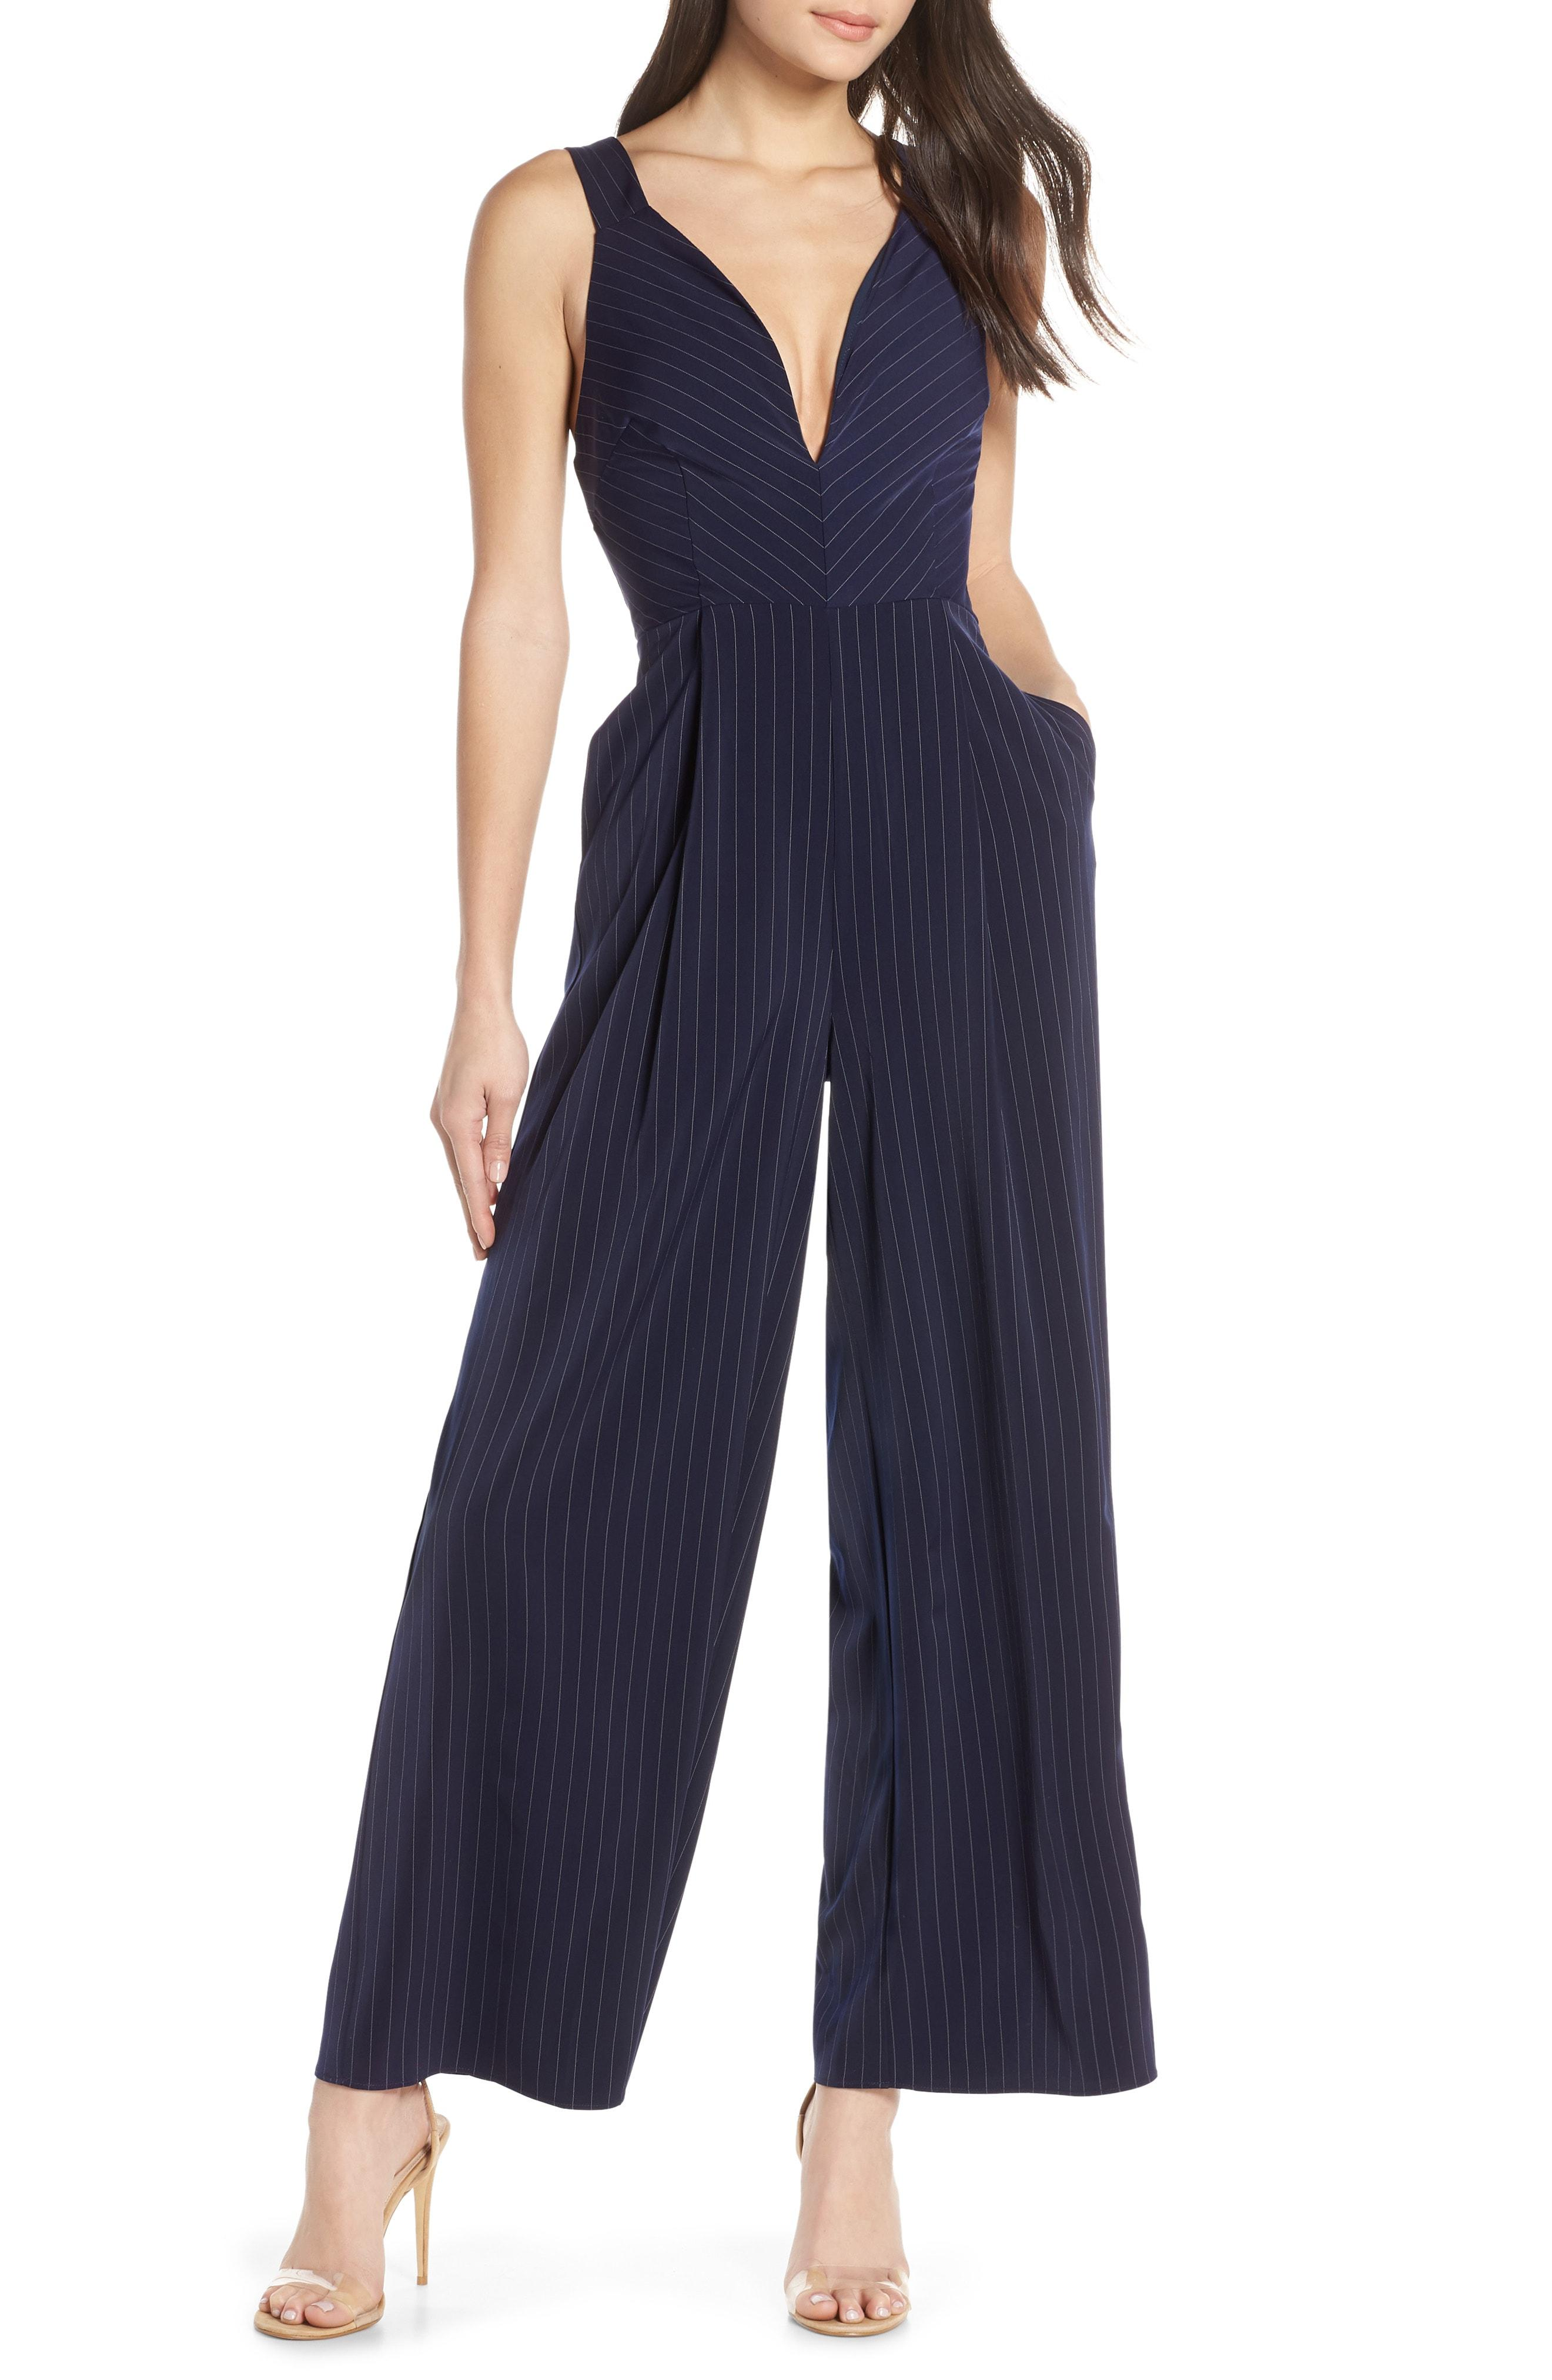 0204242cfcde Lyst - Finders Keepers Flamenco Pinstripe Jumpsuit in Blue